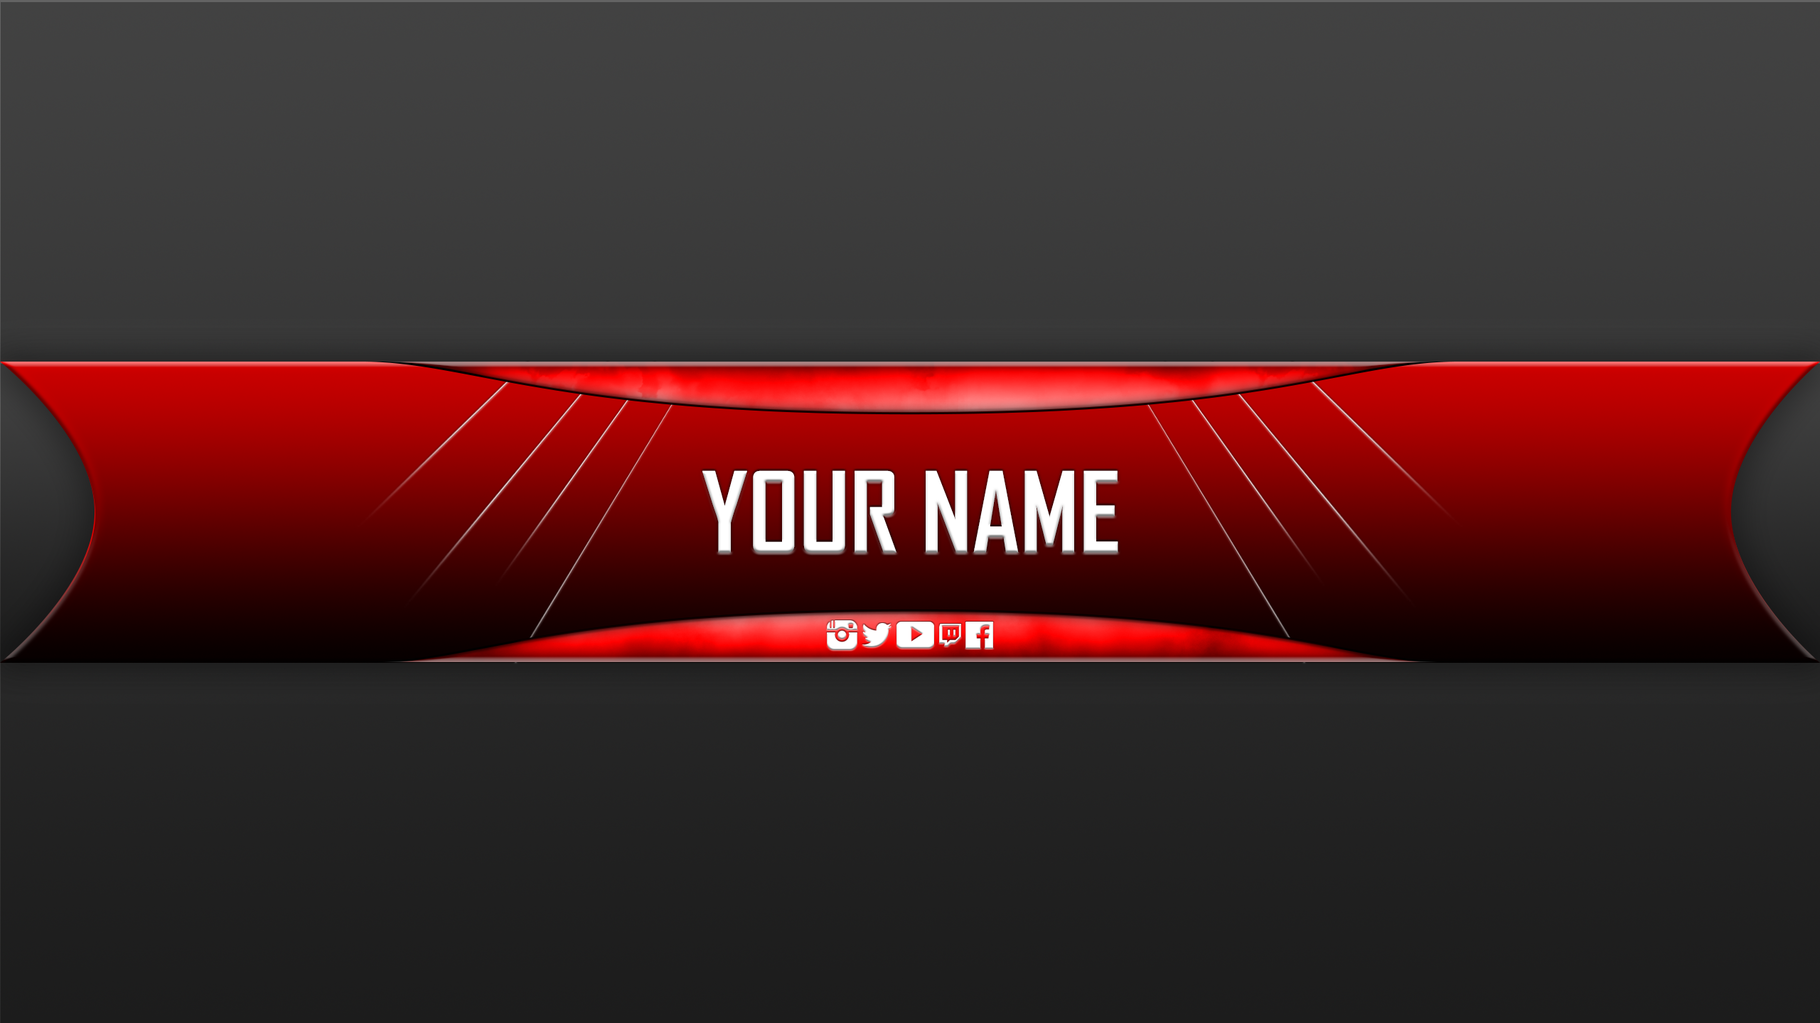 Youtube Banner Template No Text Red The 14 Common Stereotypes